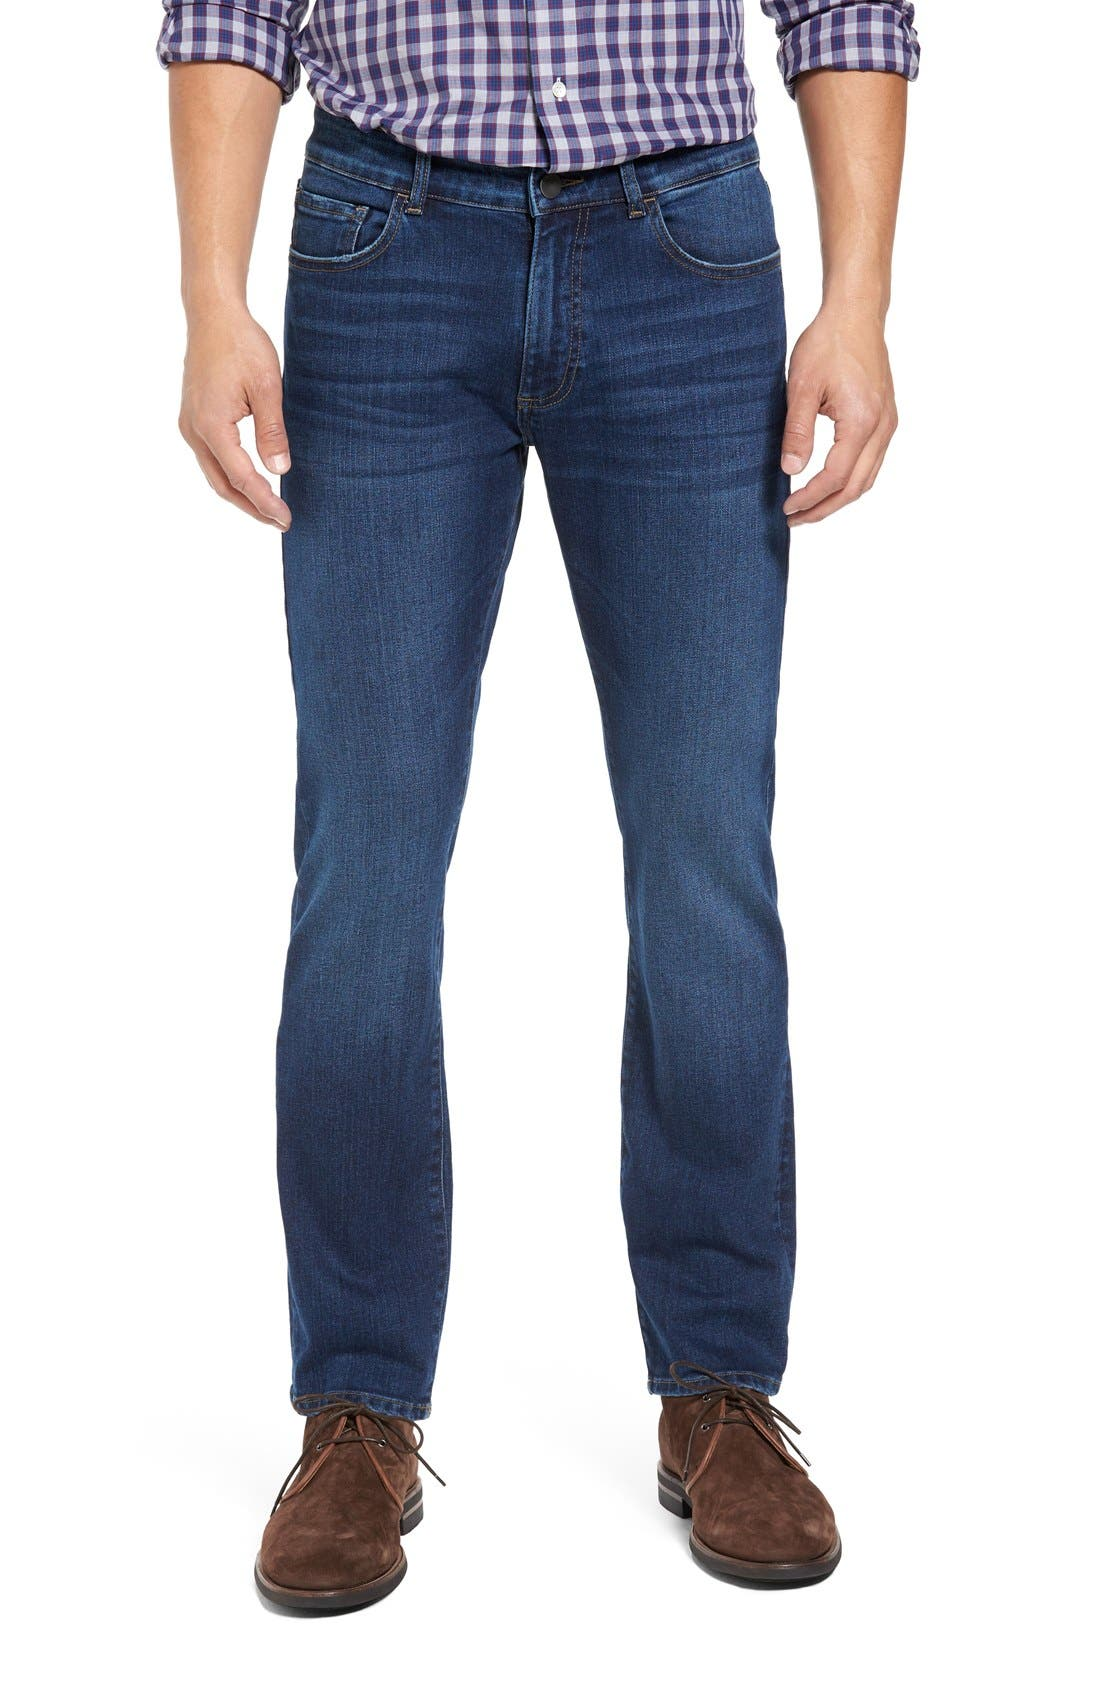 Russel Slim Straight Fit Jeans,                         Main,                         color, 405